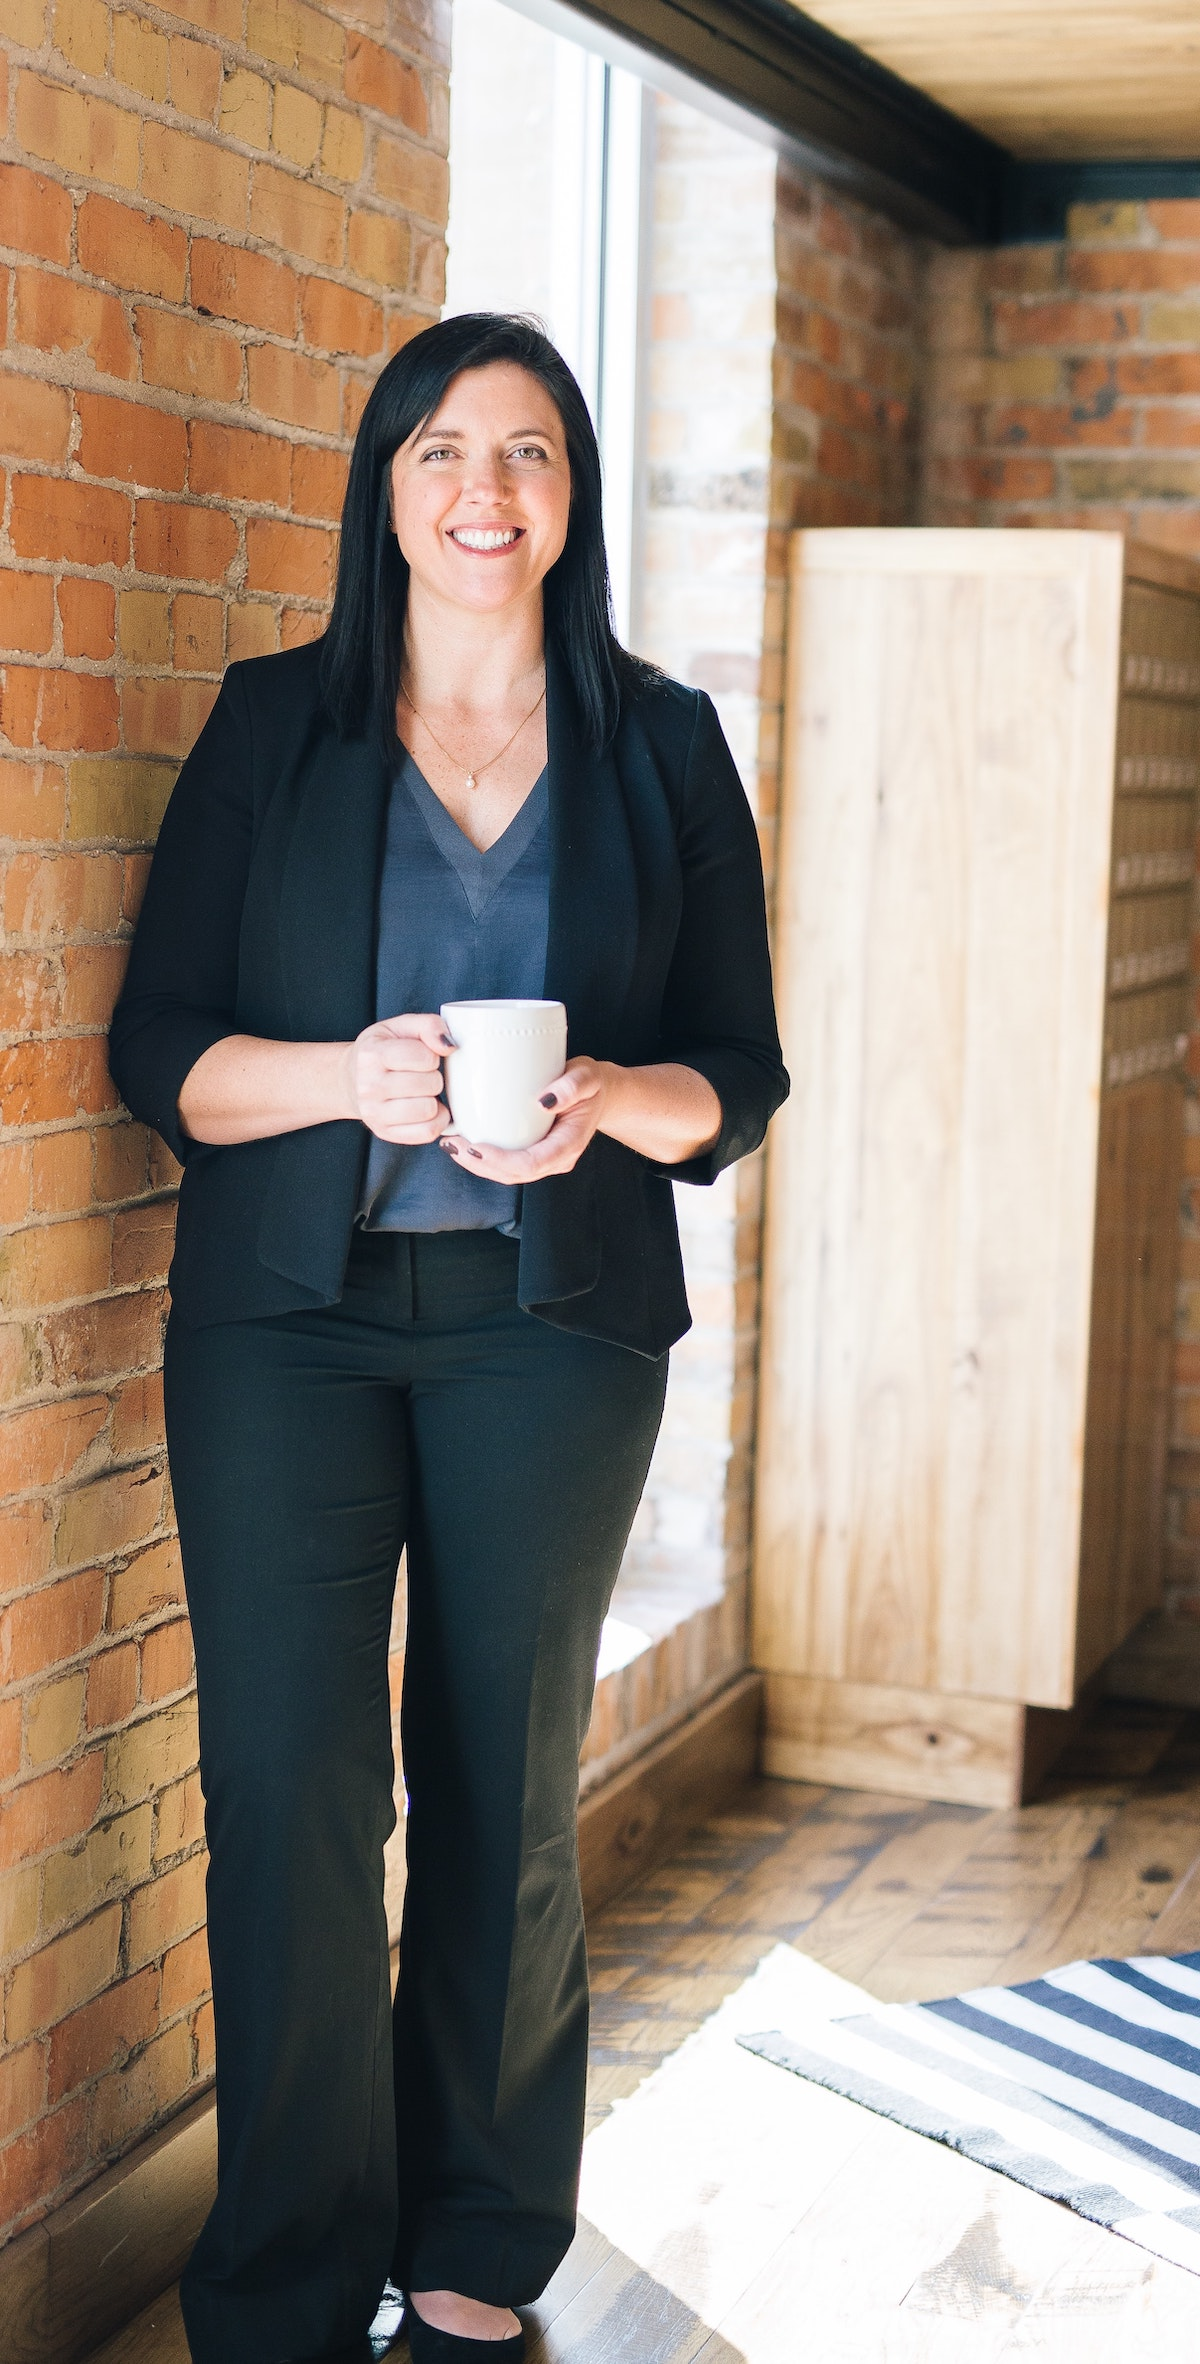 Why you should hire a professional voice actor: image of woman standing with a cup of coffee